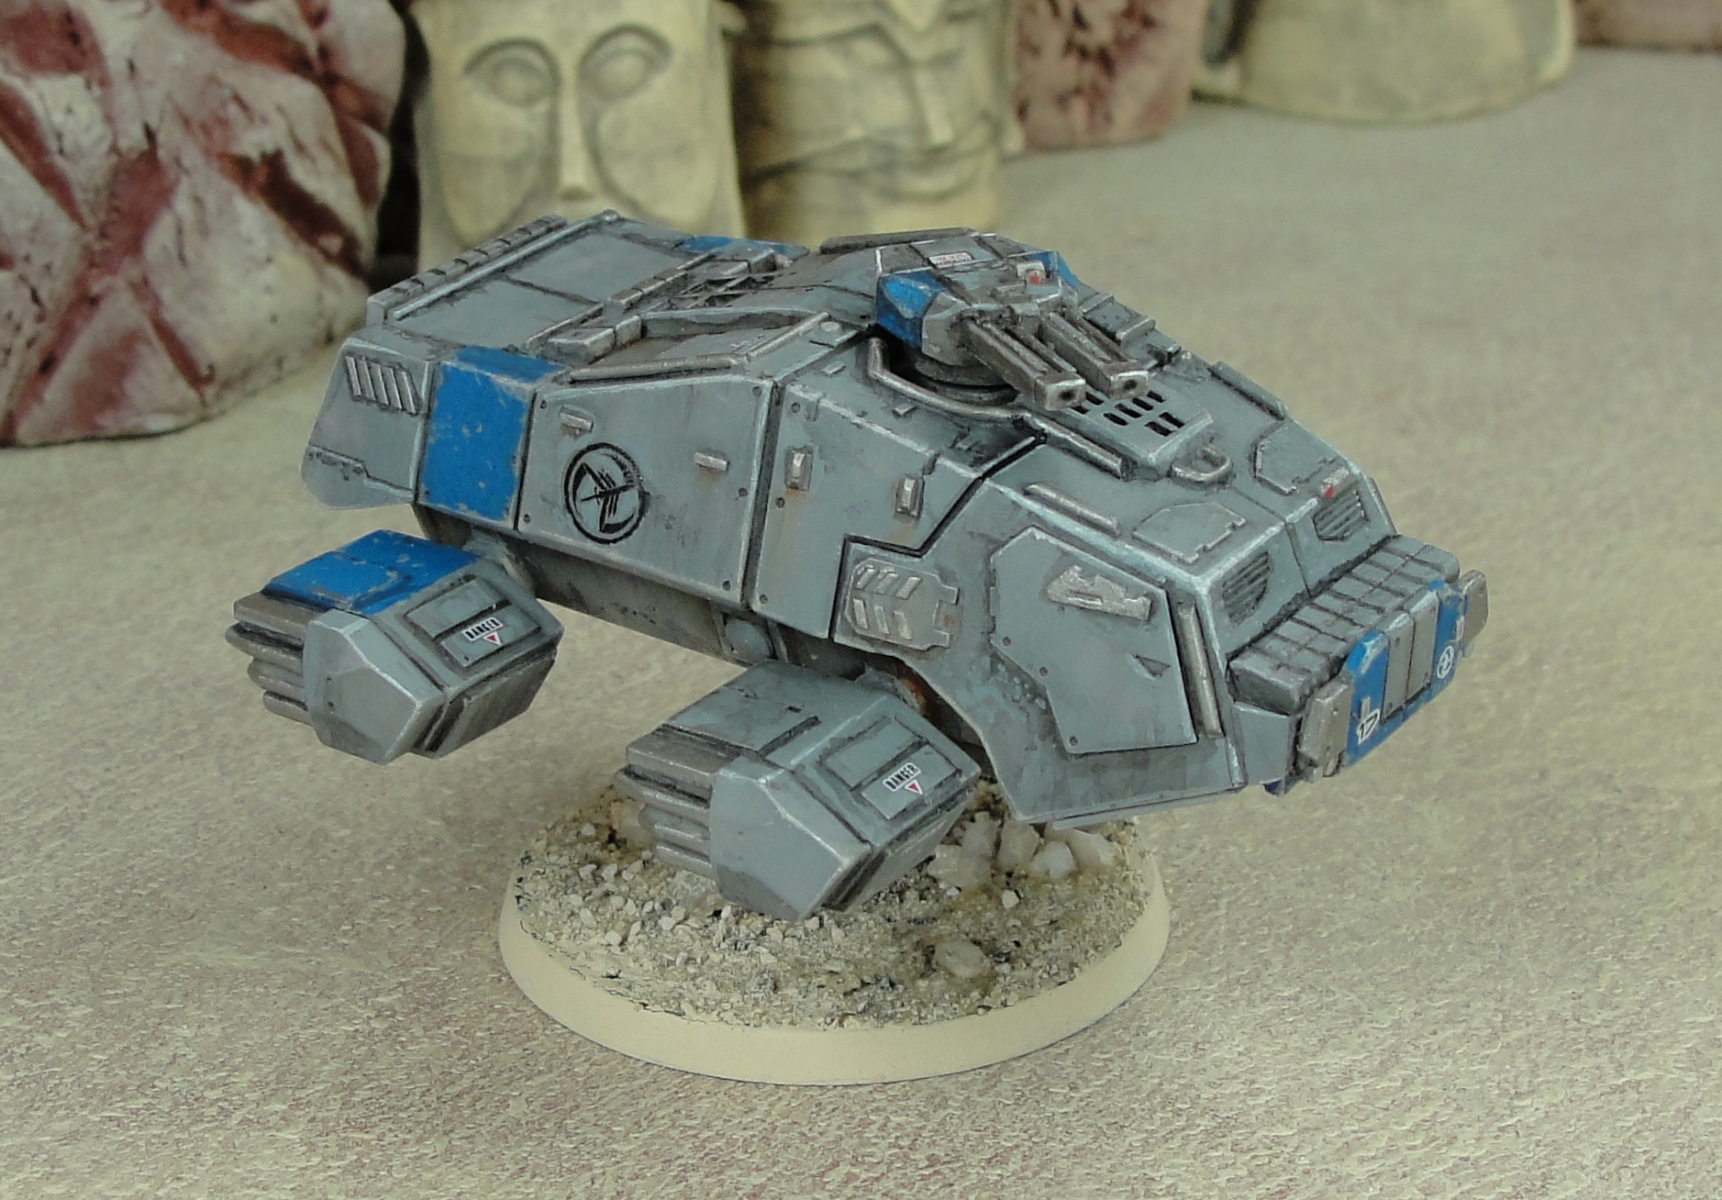 The basic Sampson has a turret with linked Light Autocannons installed.